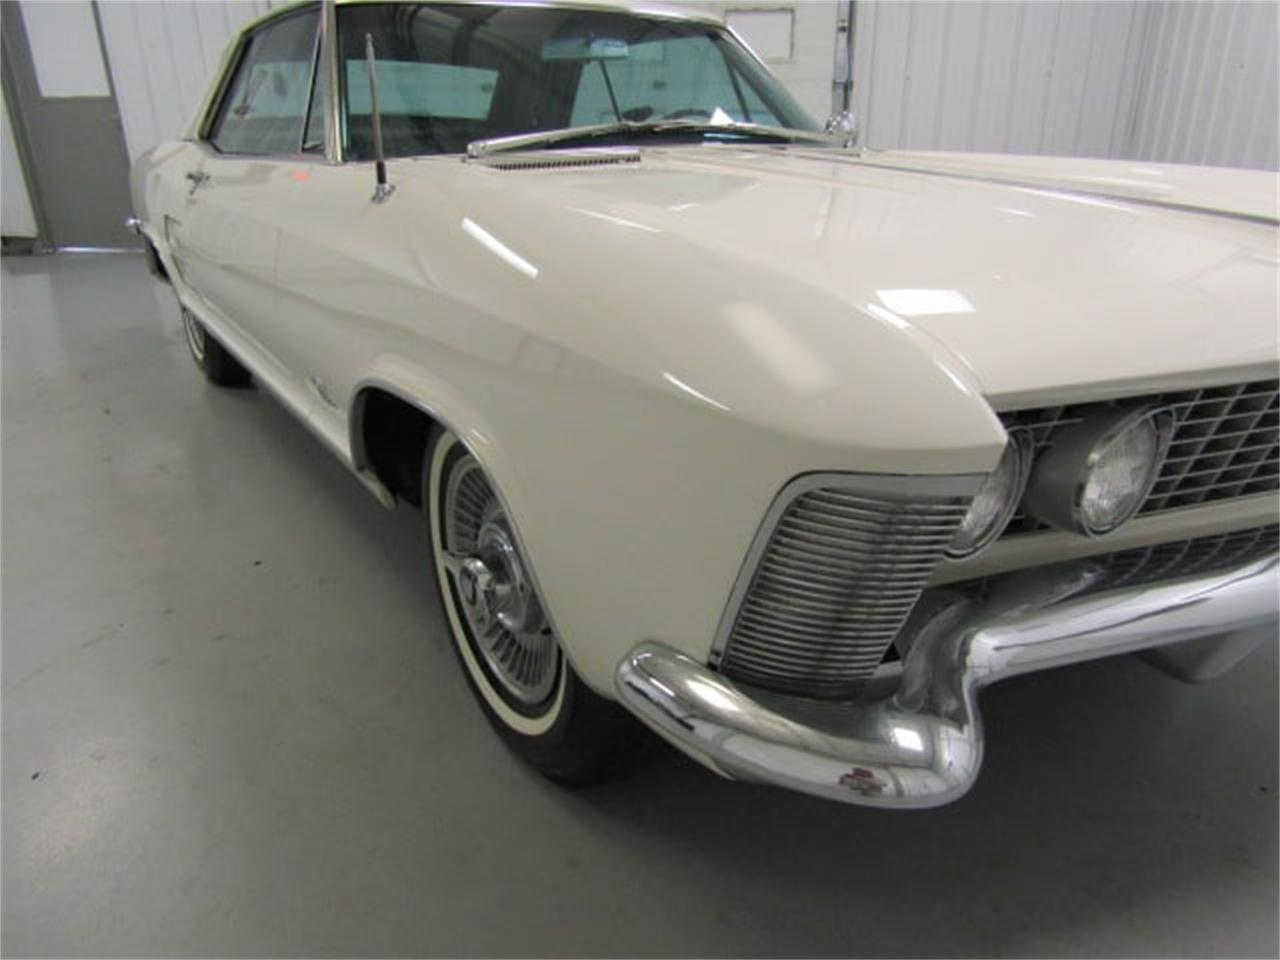 Large Picture of '63 Buick Riviera located in Christiansburg Virginia - $38,910.00 - MJSM